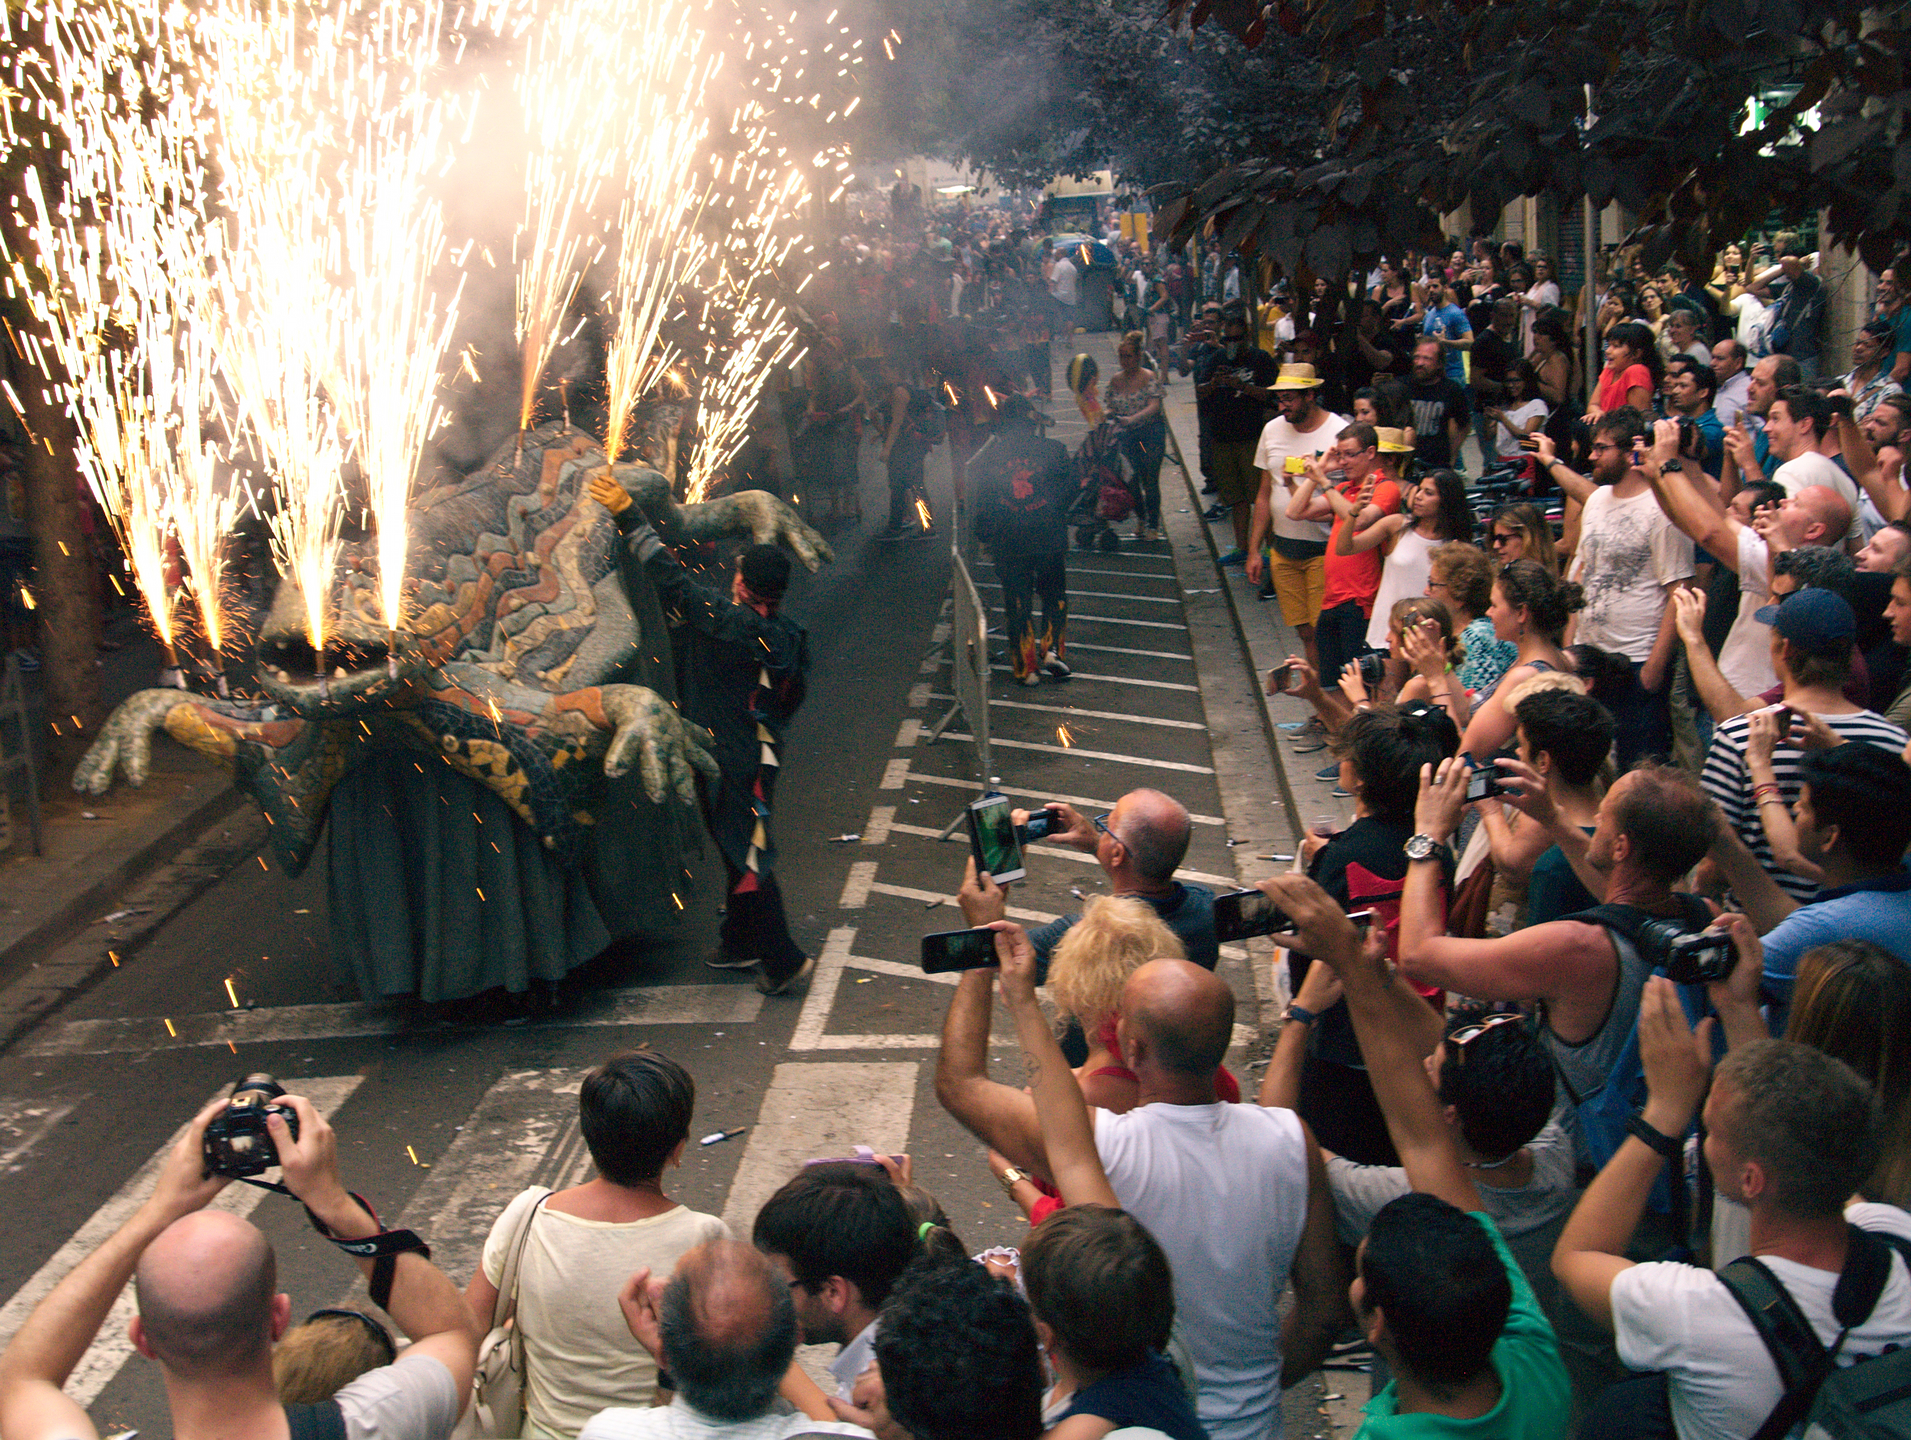 The Güell dragon replica with fireworks in C. del Torrent de l'Olla.